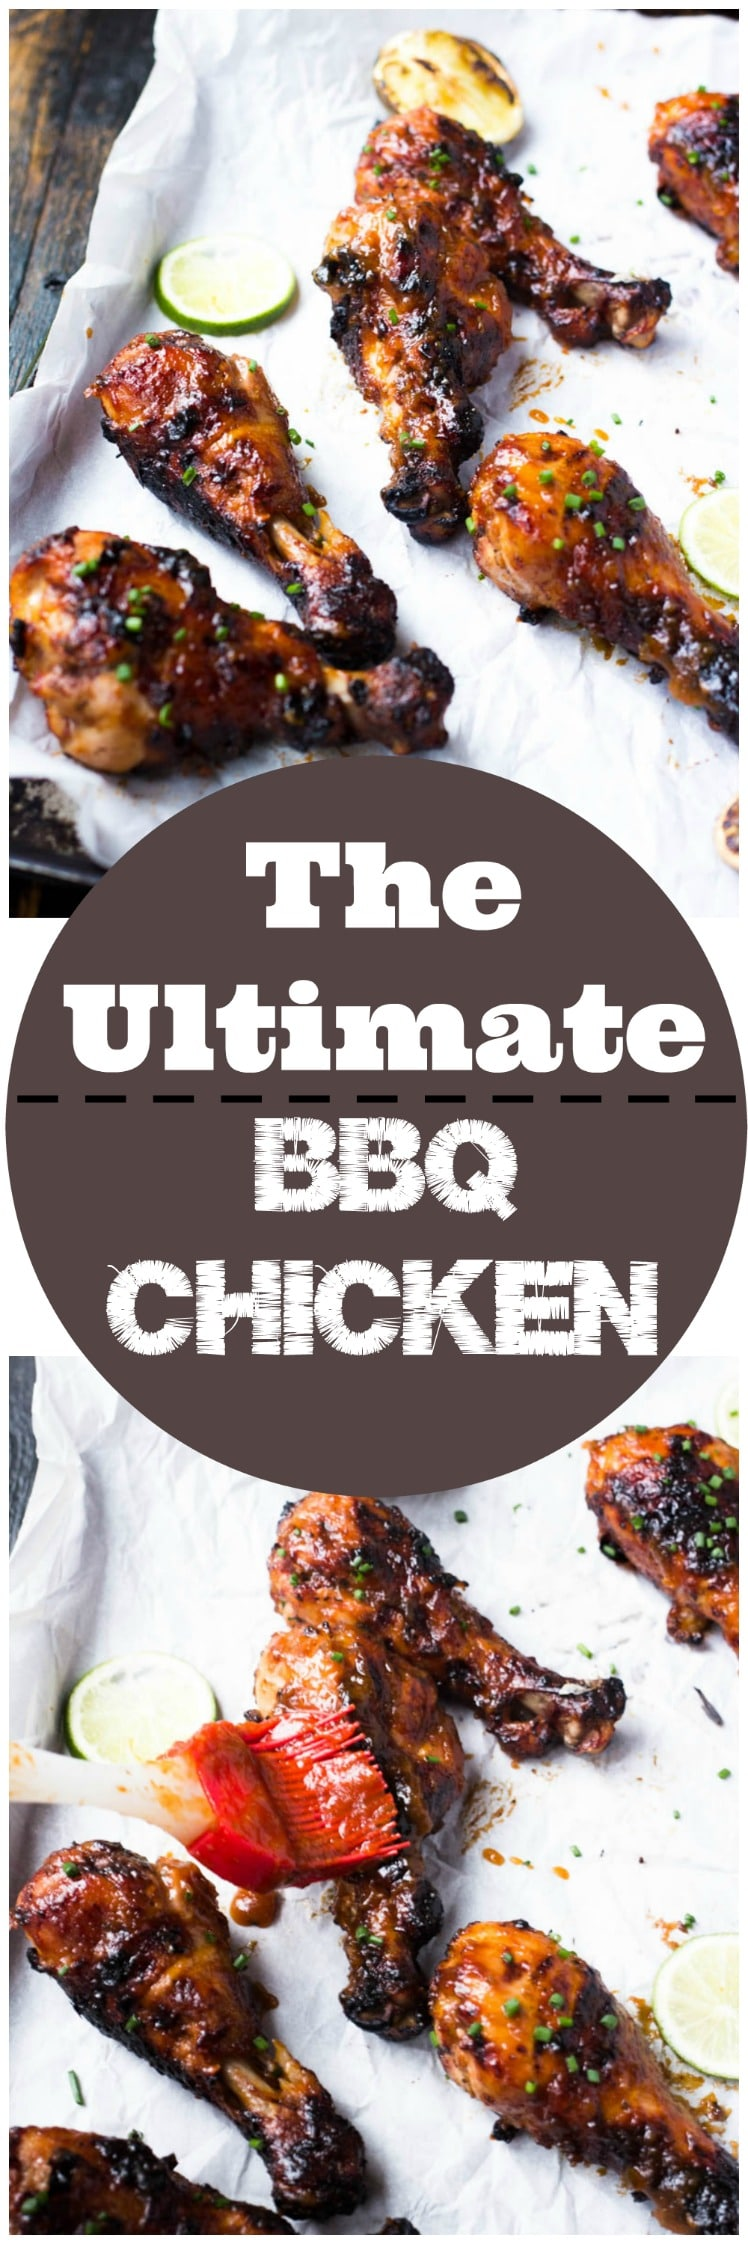 The ultimate BBQ chicken is slightly tangy and sticky sweet. Learn the restaurant secrets to cooking perfectly tender BBQ chicken and how to make a gloriously sweet and spicy sauce to mop on top of it.